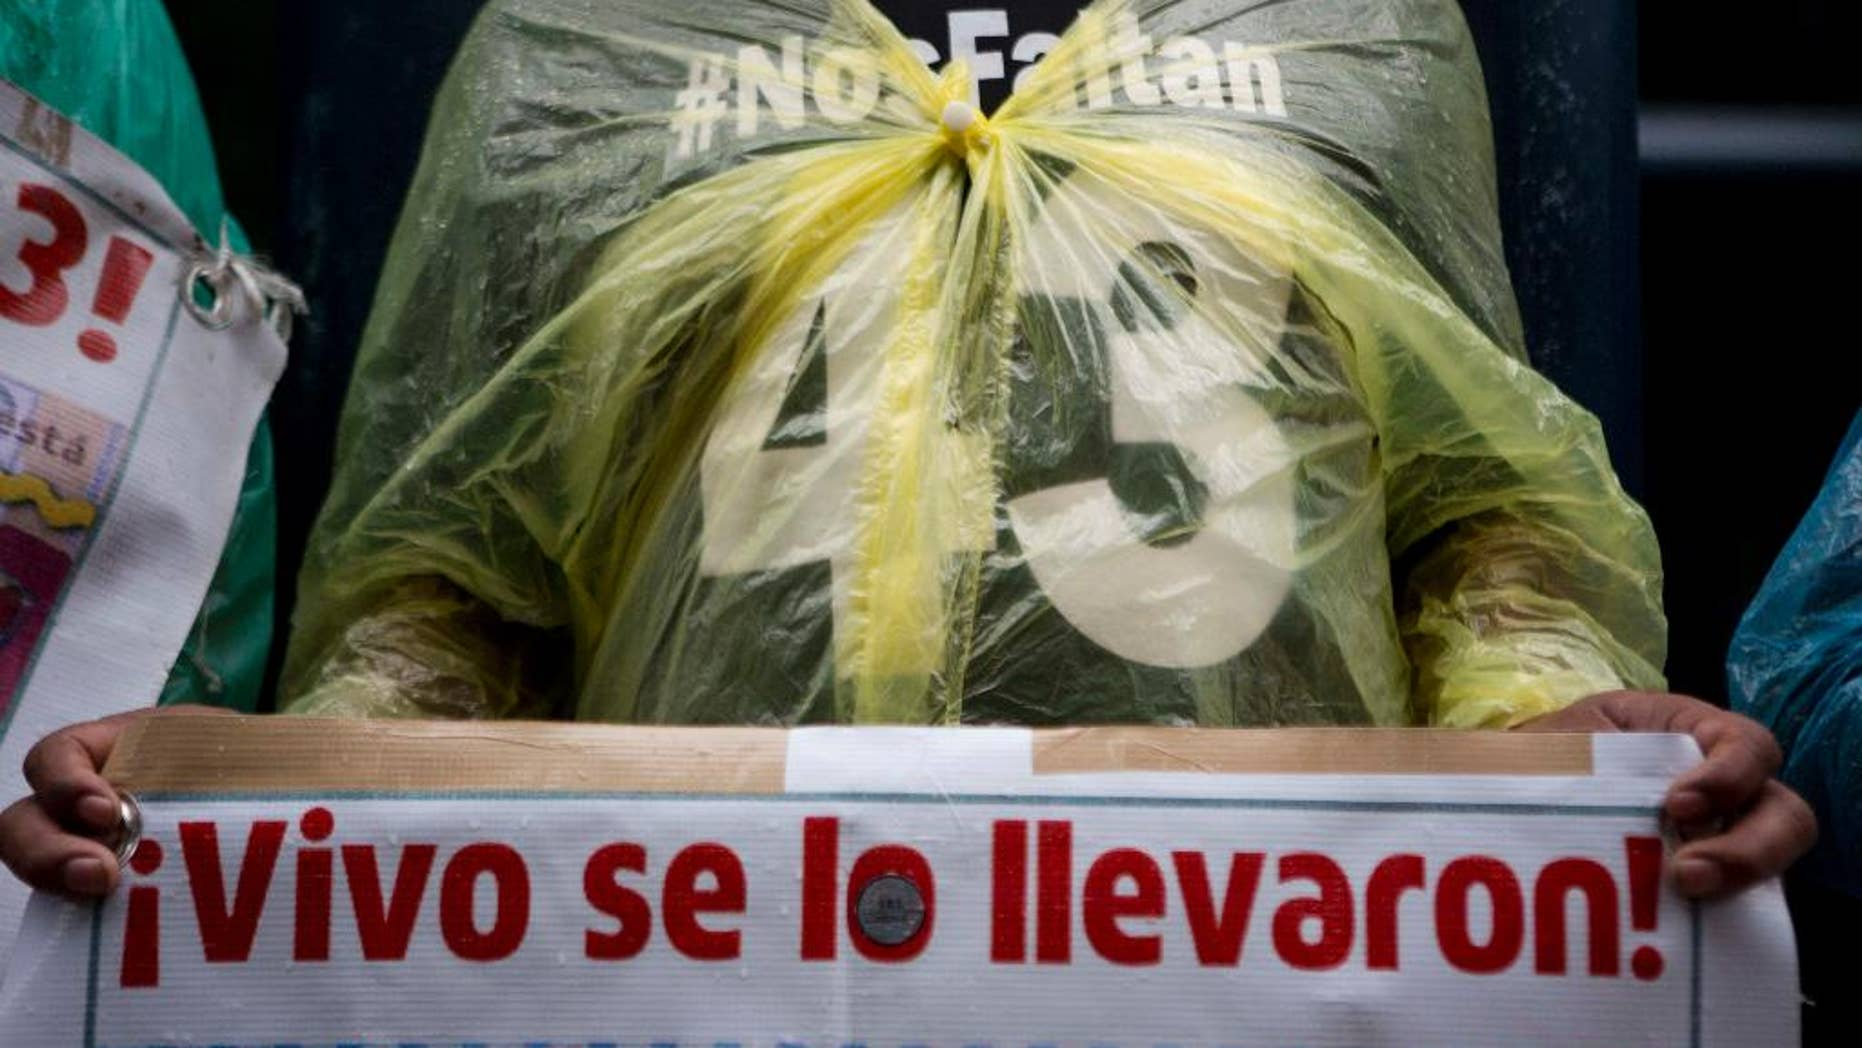 """FILE - In this May 26, 2016, file photo, a relative carries signs that reads in Spanish """"They took them alive!"""" referring to the 43 missing students from a rural teachers college during a march in Mexico City, Thursday. Mexico's National Human Rights Commission said Monday, July 11, that a classmate of 43 college students who disappeared in 2014 had been tortured before his body was found the following day.  (AP Photo/Eduardo Verdugo, File)"""